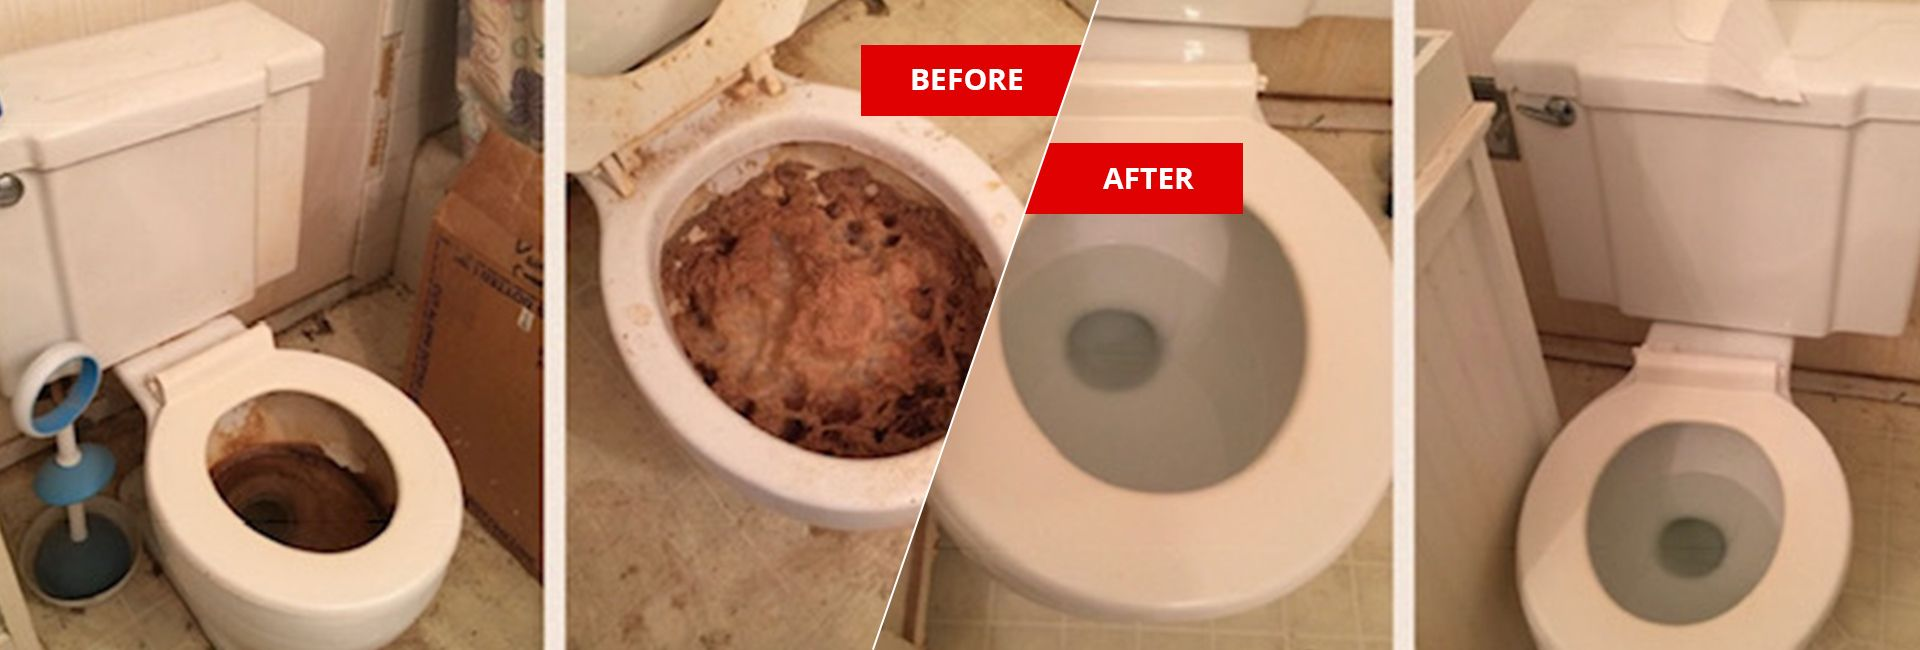 Feces-urine cleanup